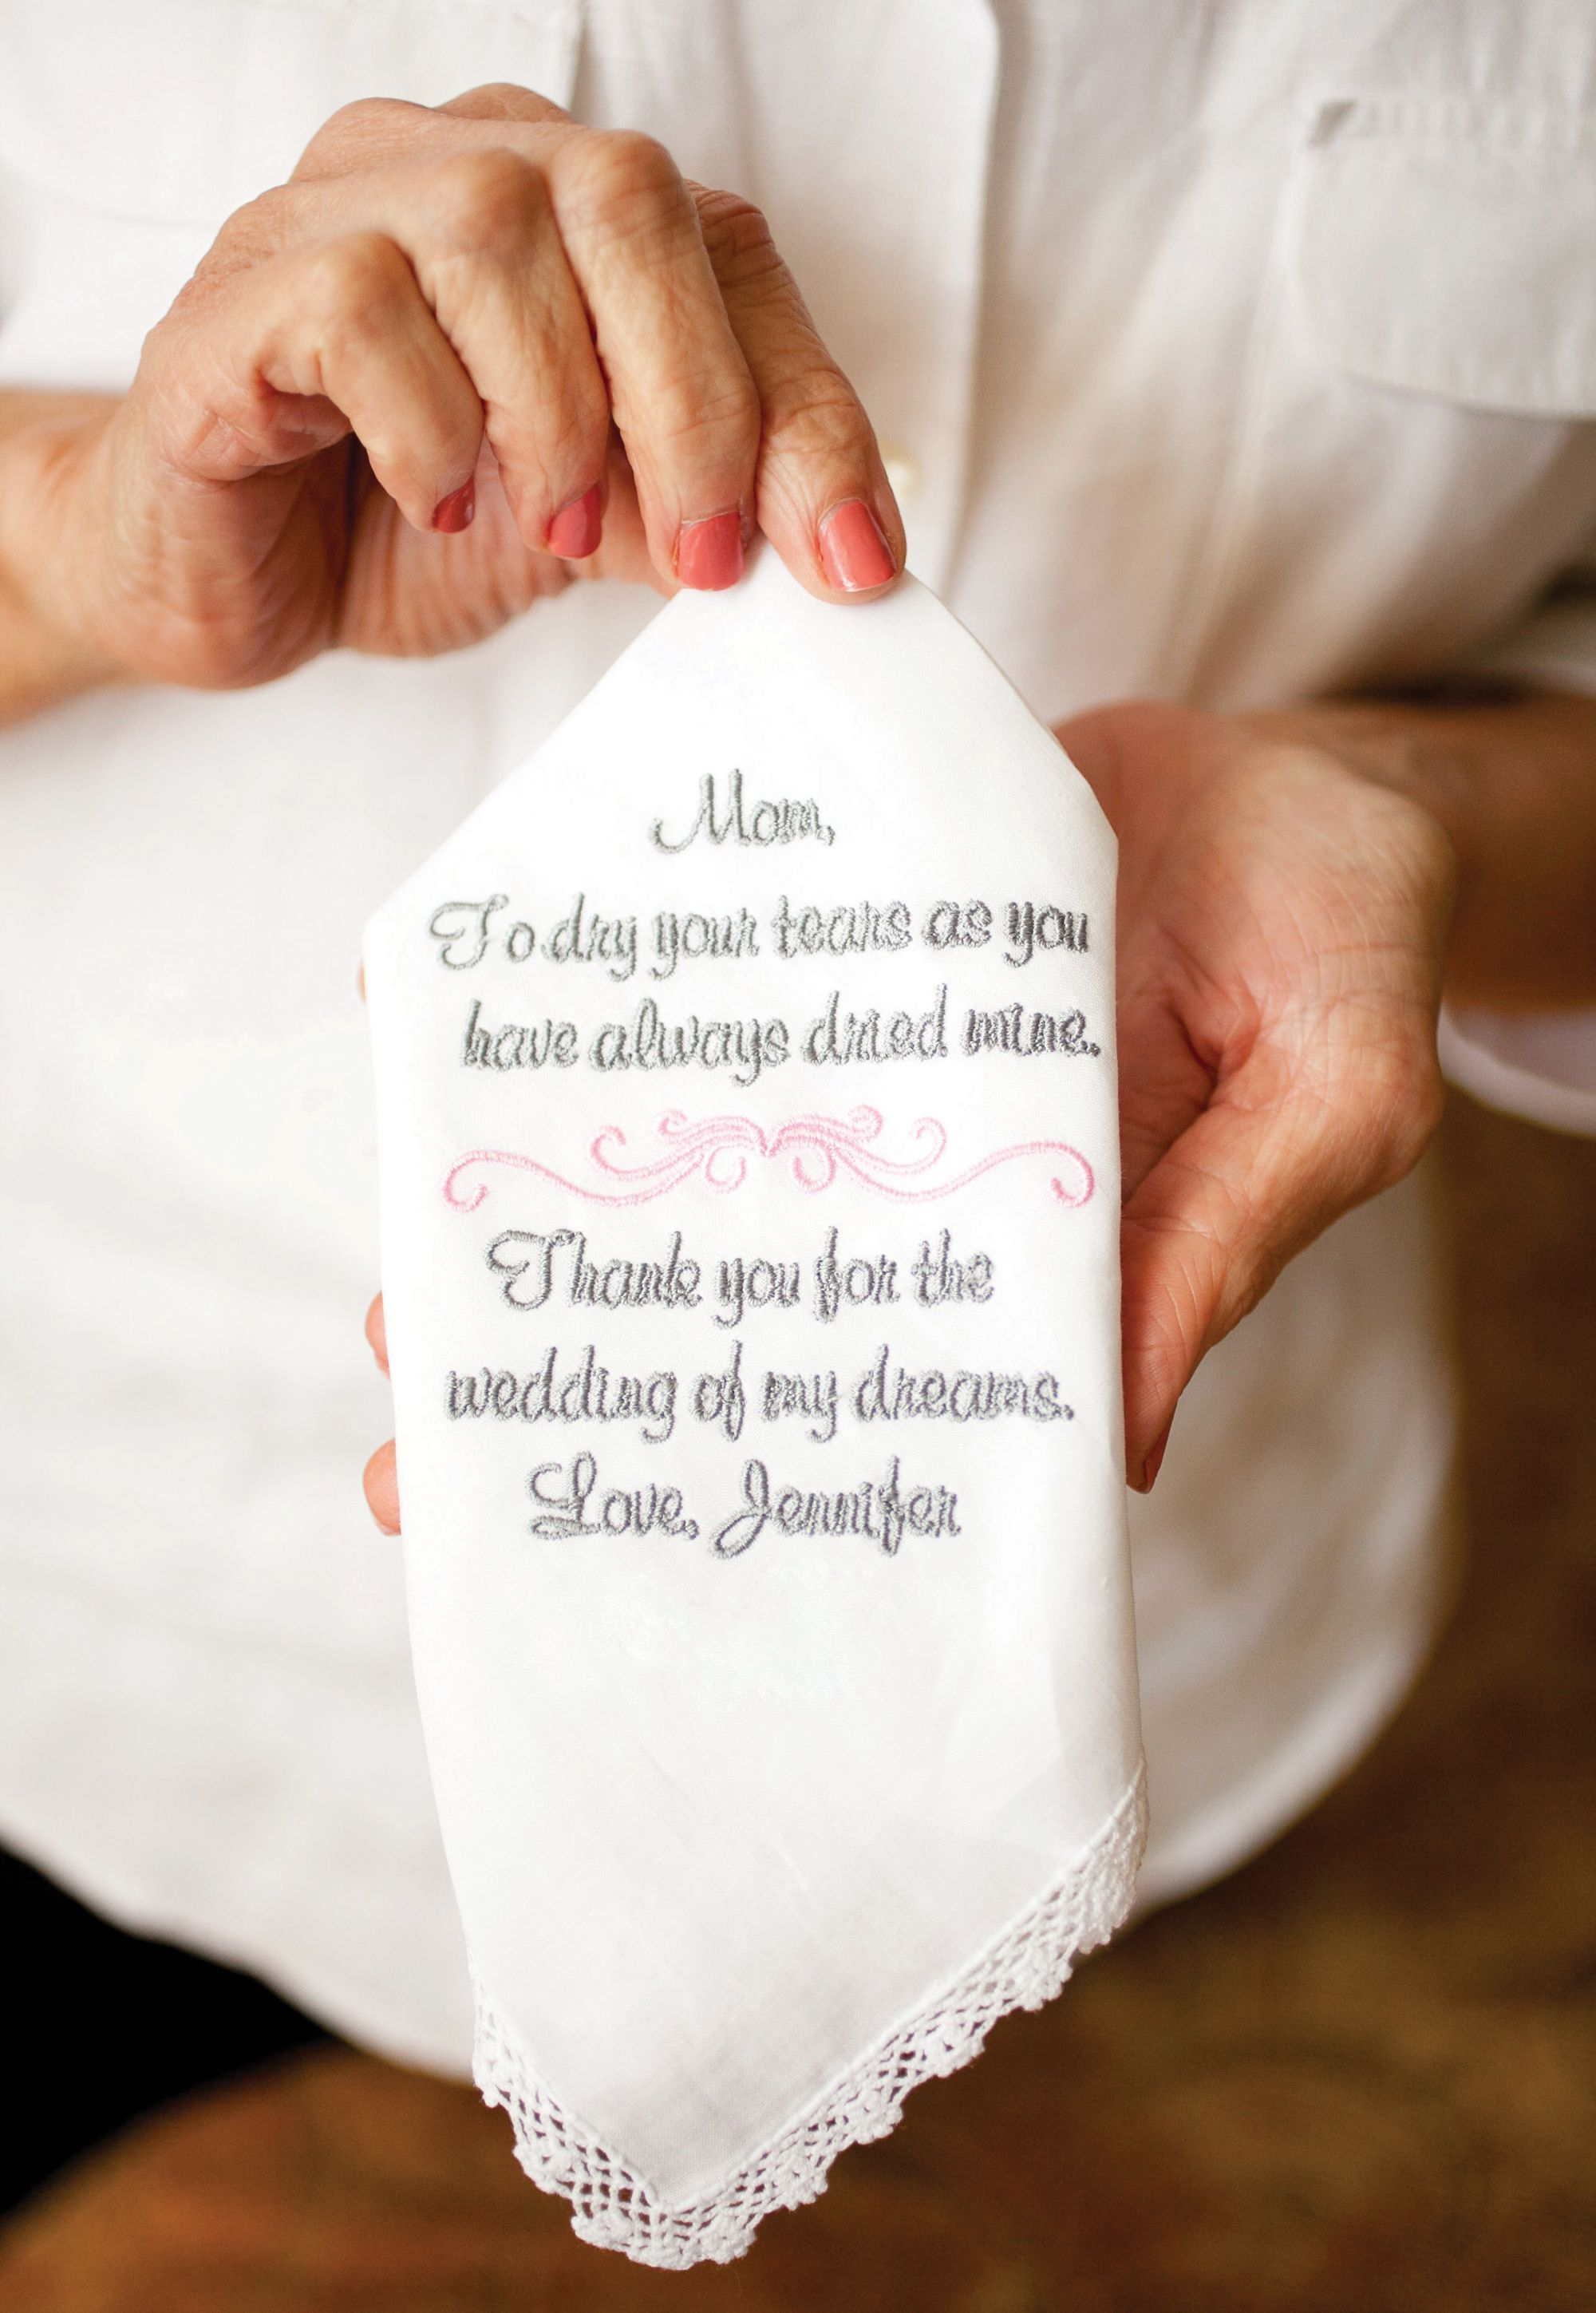 20 thankyou gift ideas for parents of the bride and groom